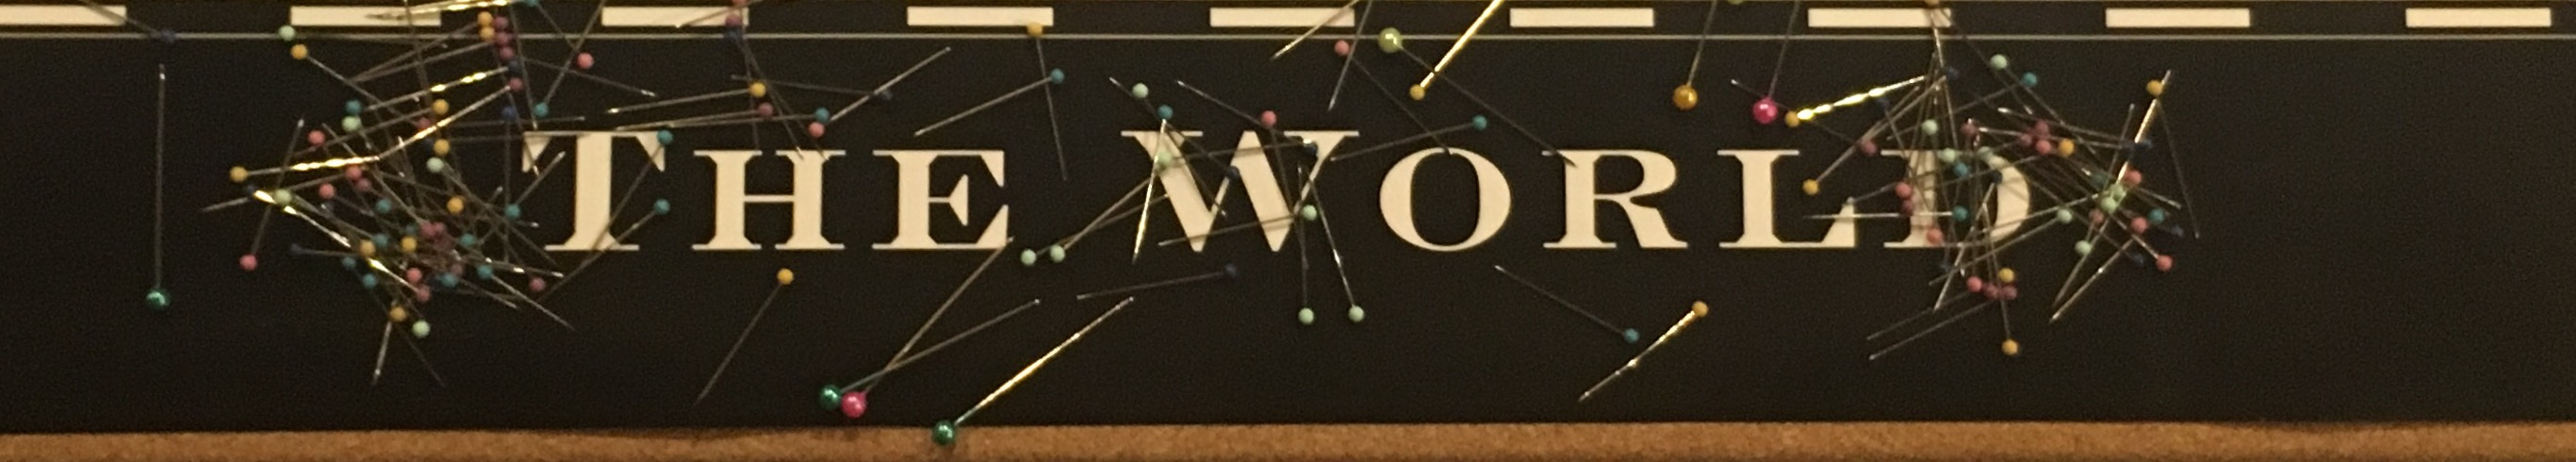 The World Pushpin Pano